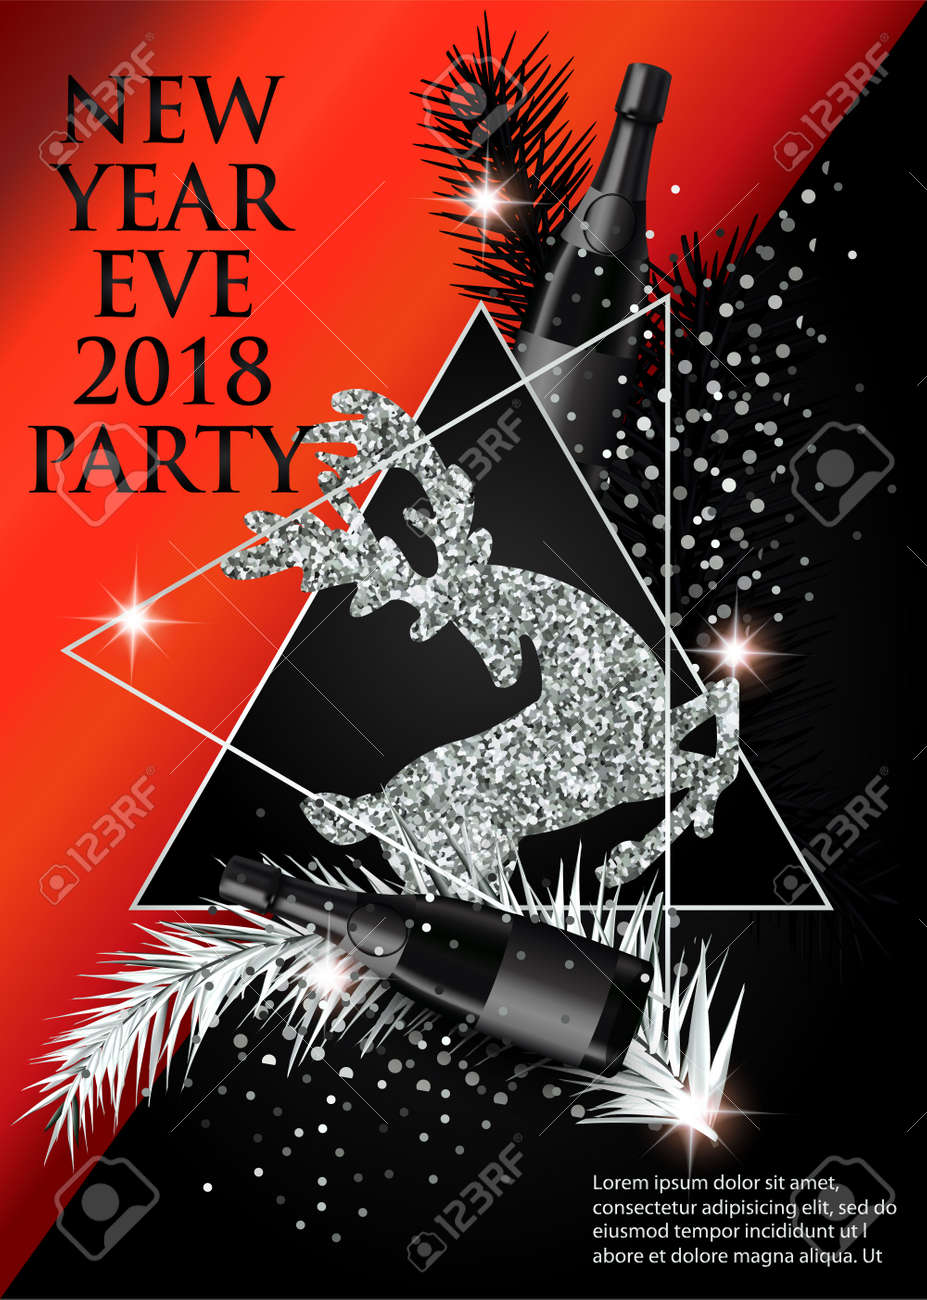 new year party invitation card with christmas tree brunches deer bottles of champagne and